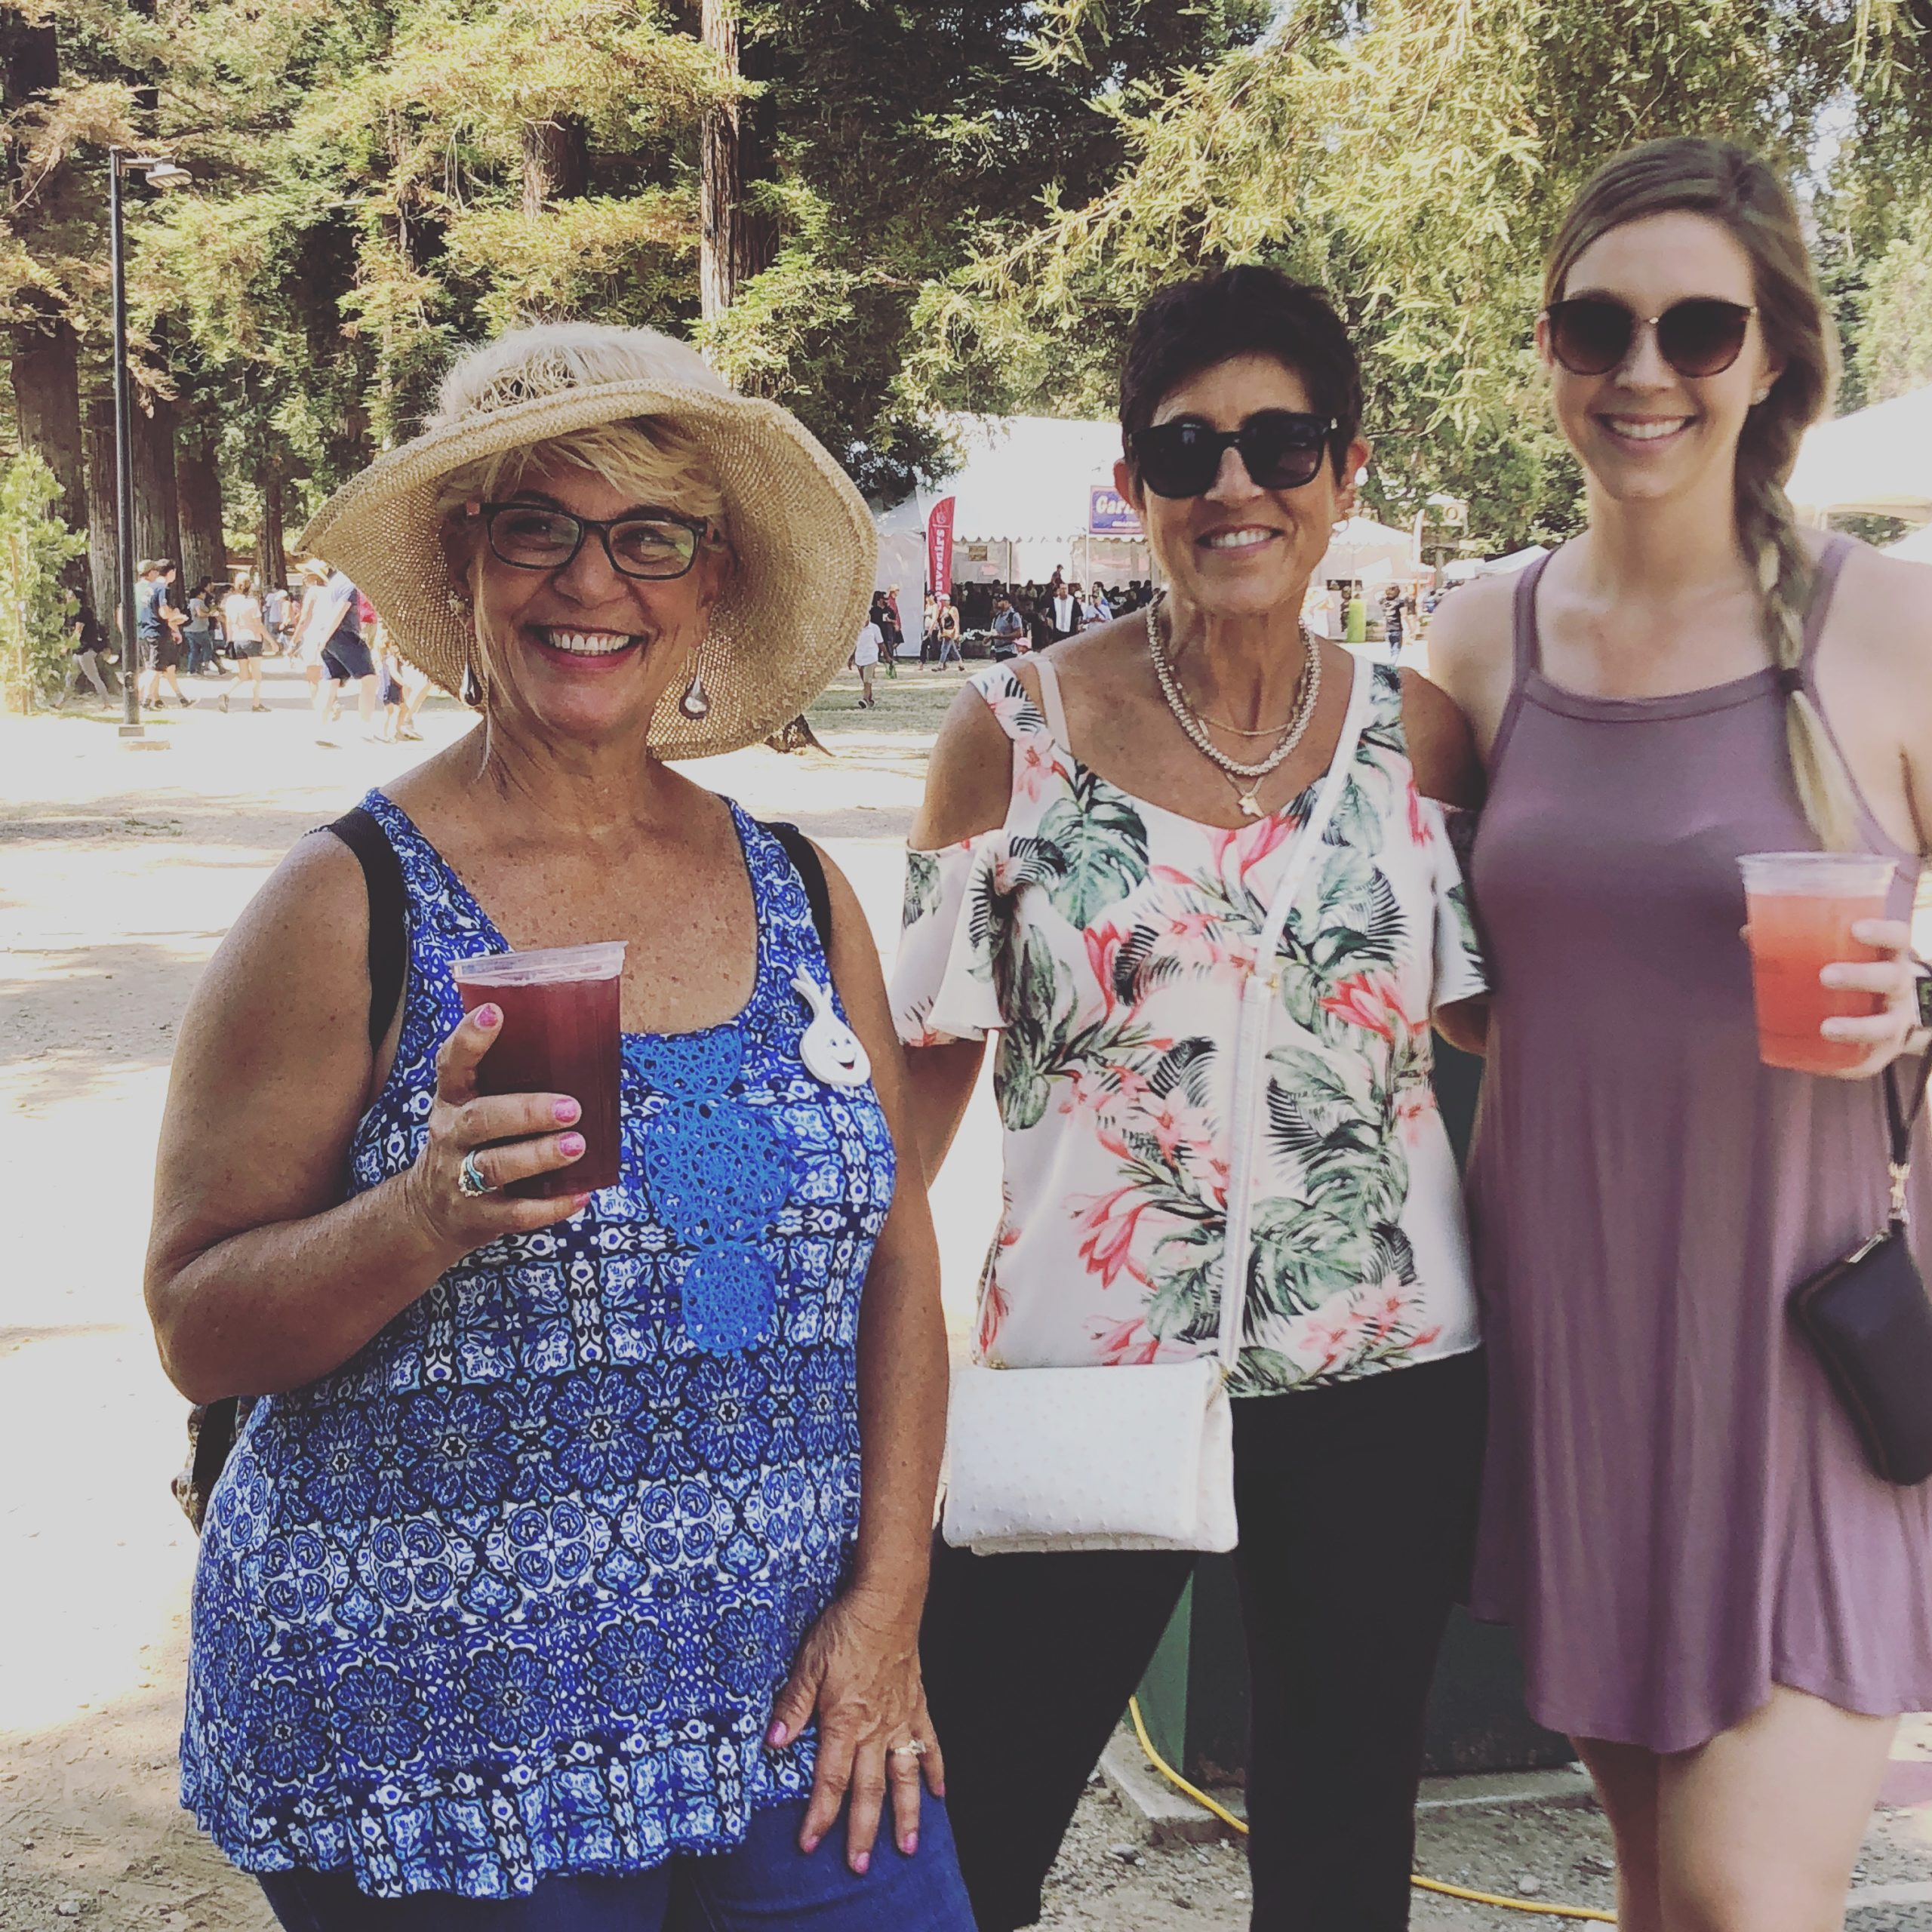 Photo of Ladies at the Gilroy Garlic Festival in 2018 holding Gilroy Foundation Wine Coolers and Sangria.